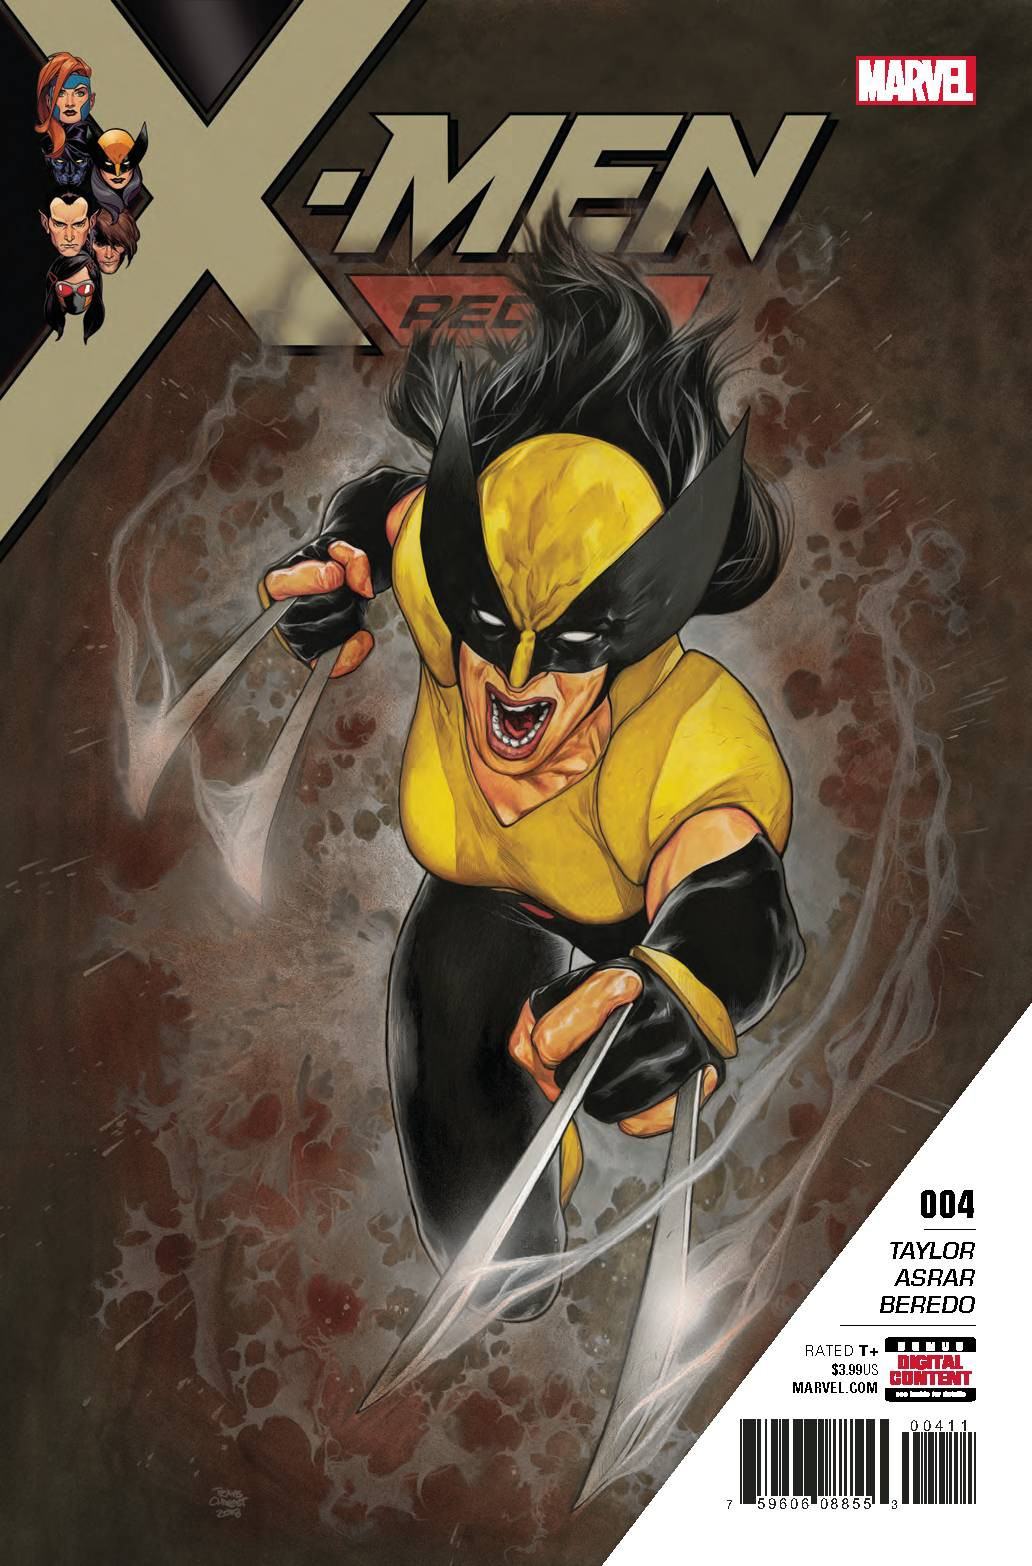 Marvel X-Men Red #4 by